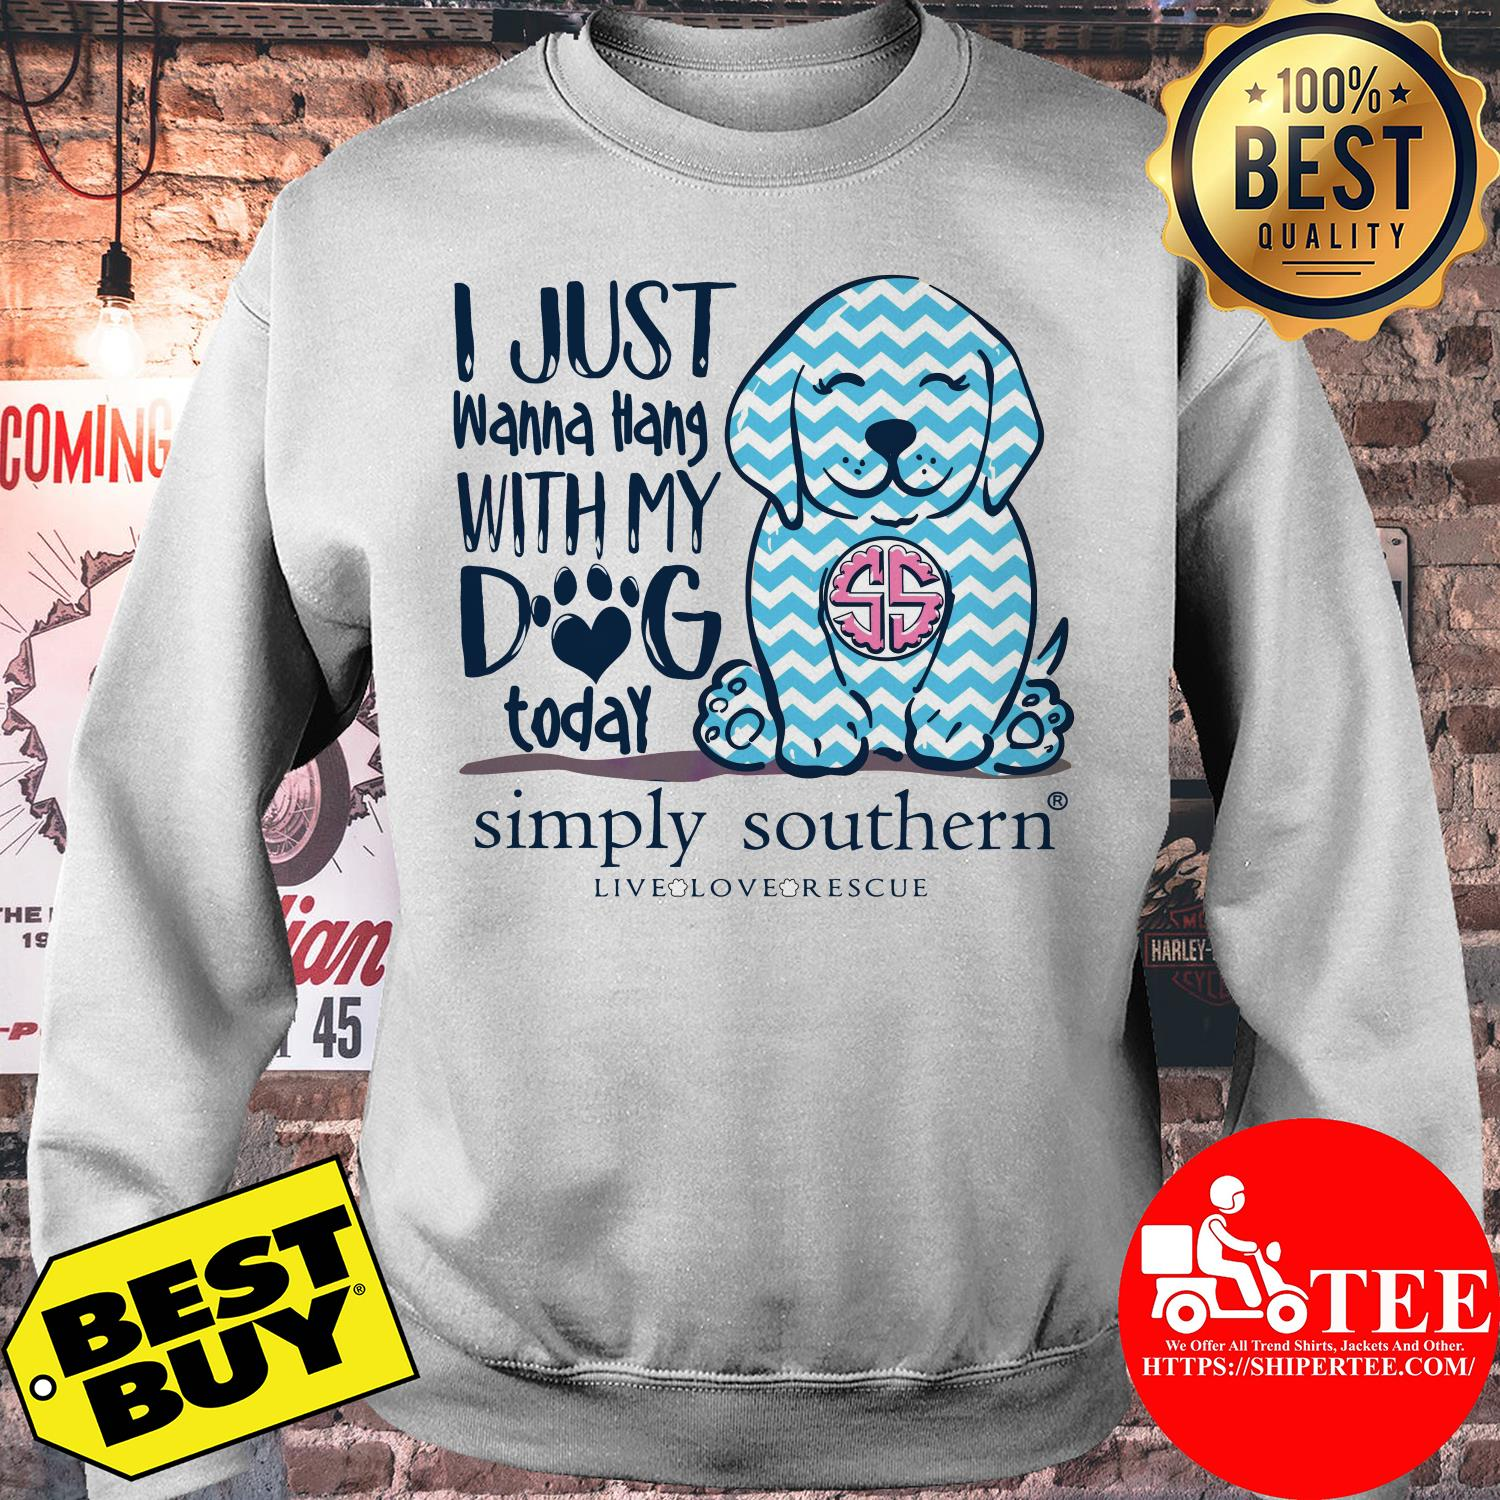 Simply Southern Preppy Dog Tiedye I just wanna hang with my dog today sweatshirt